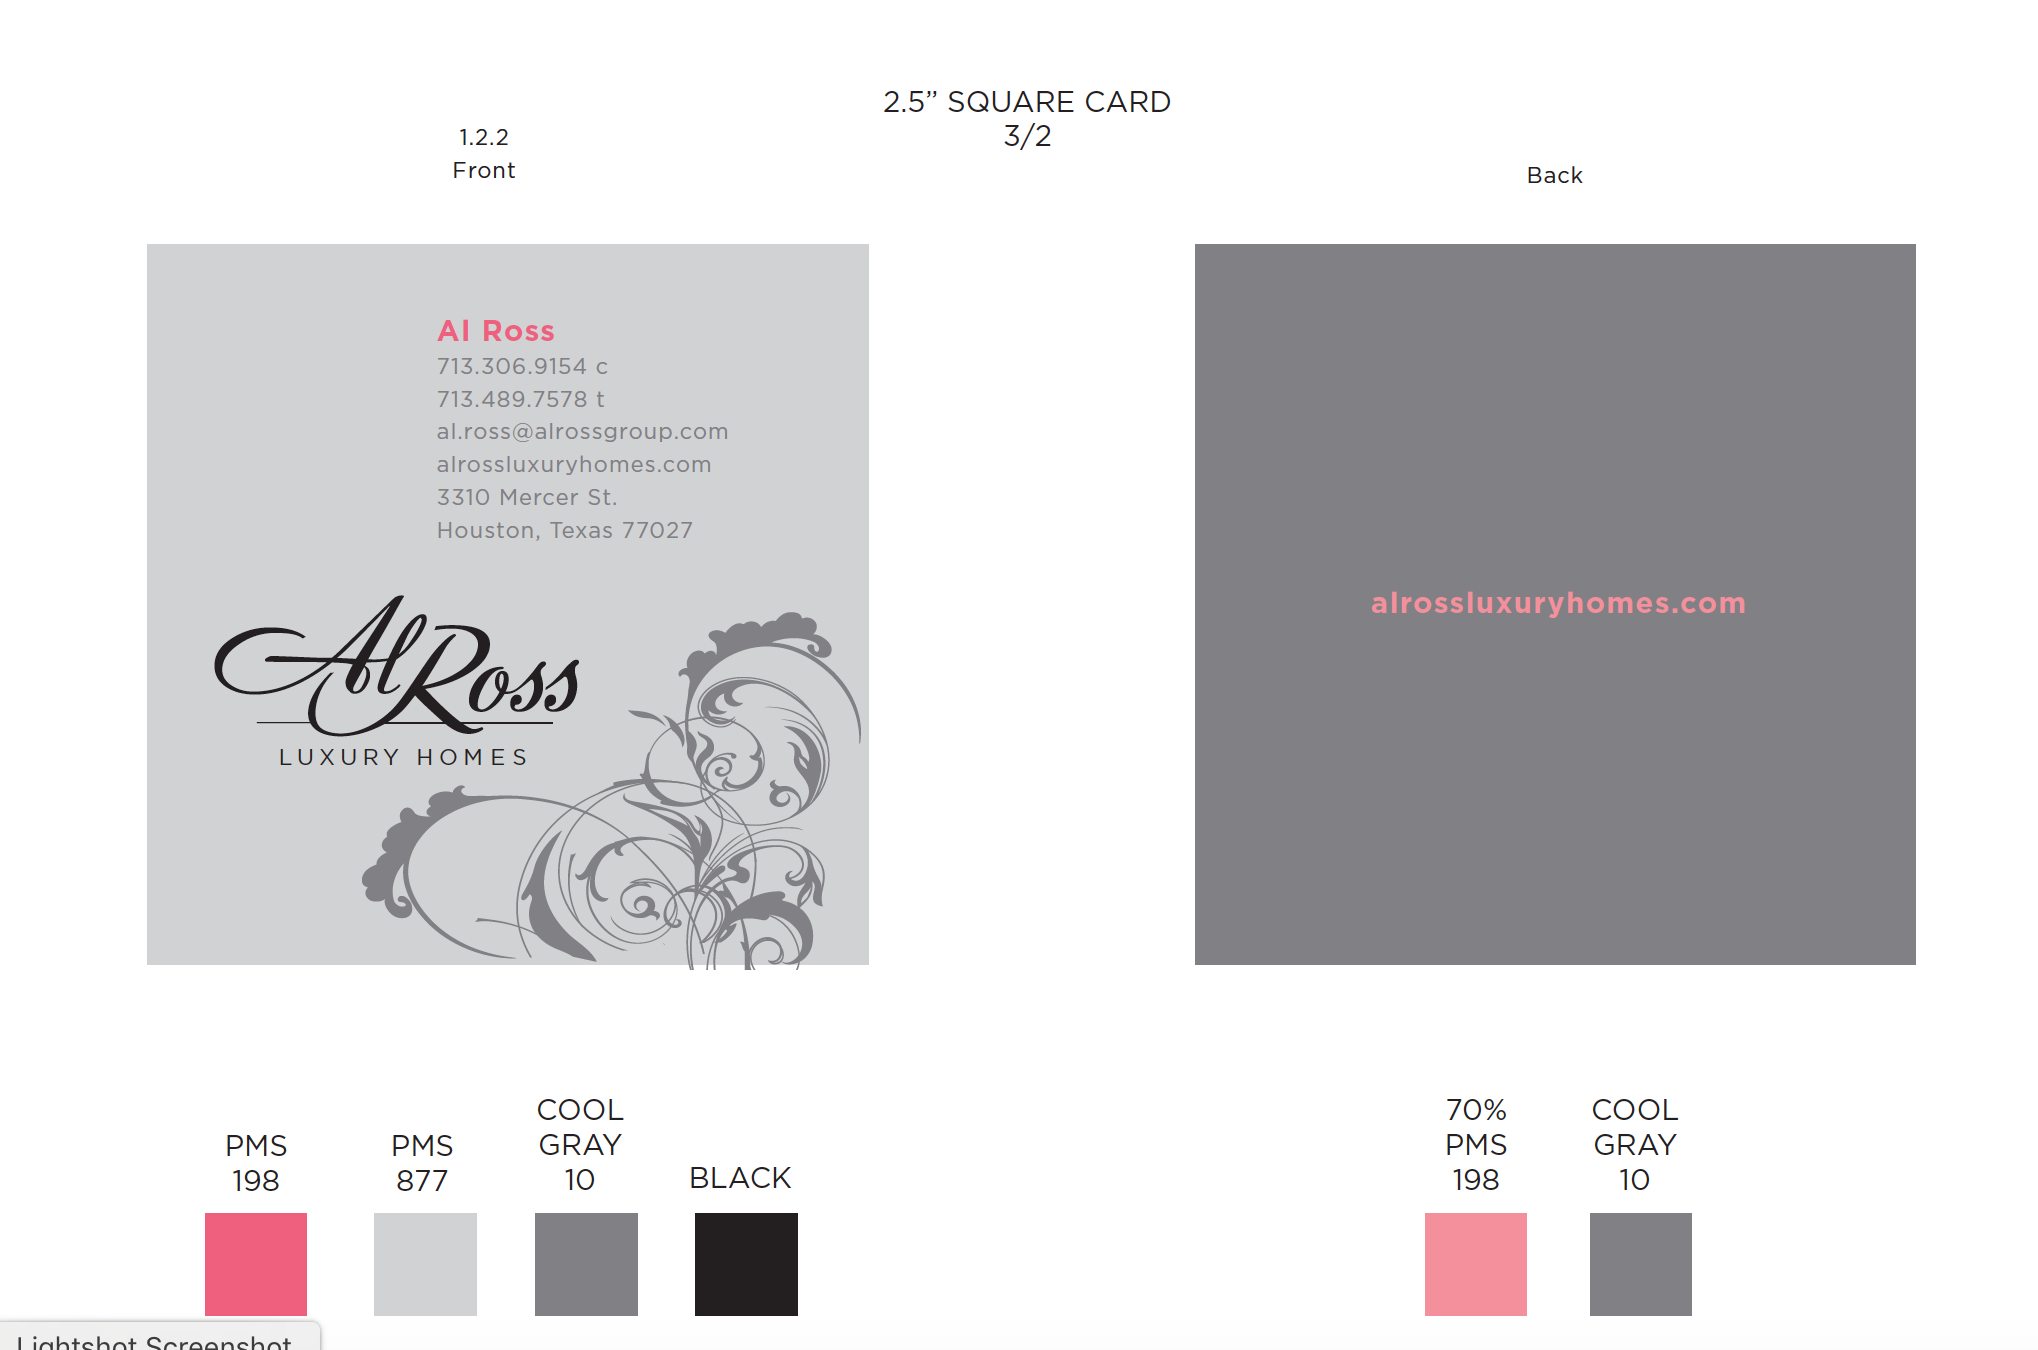 Al Ross Luxury Homes Identity